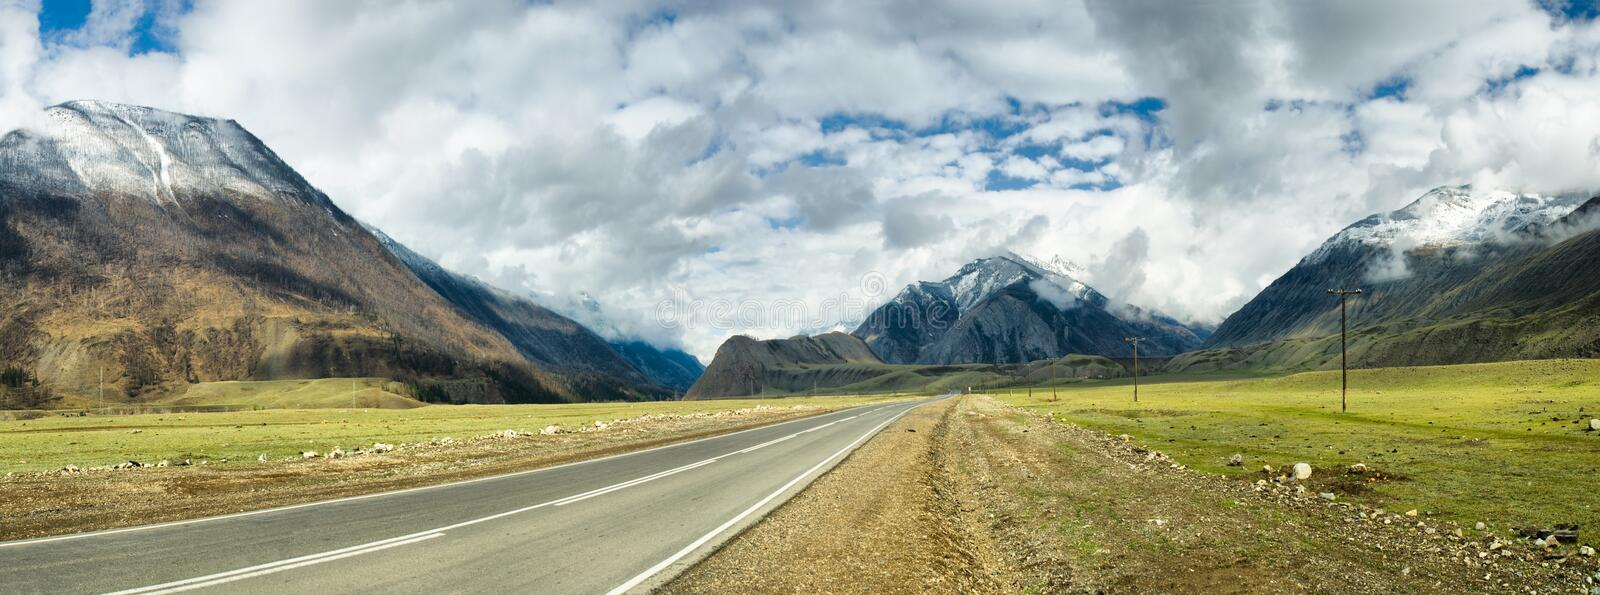 Download Road in mountains stock photo. Image of horizontal, line - 16806028